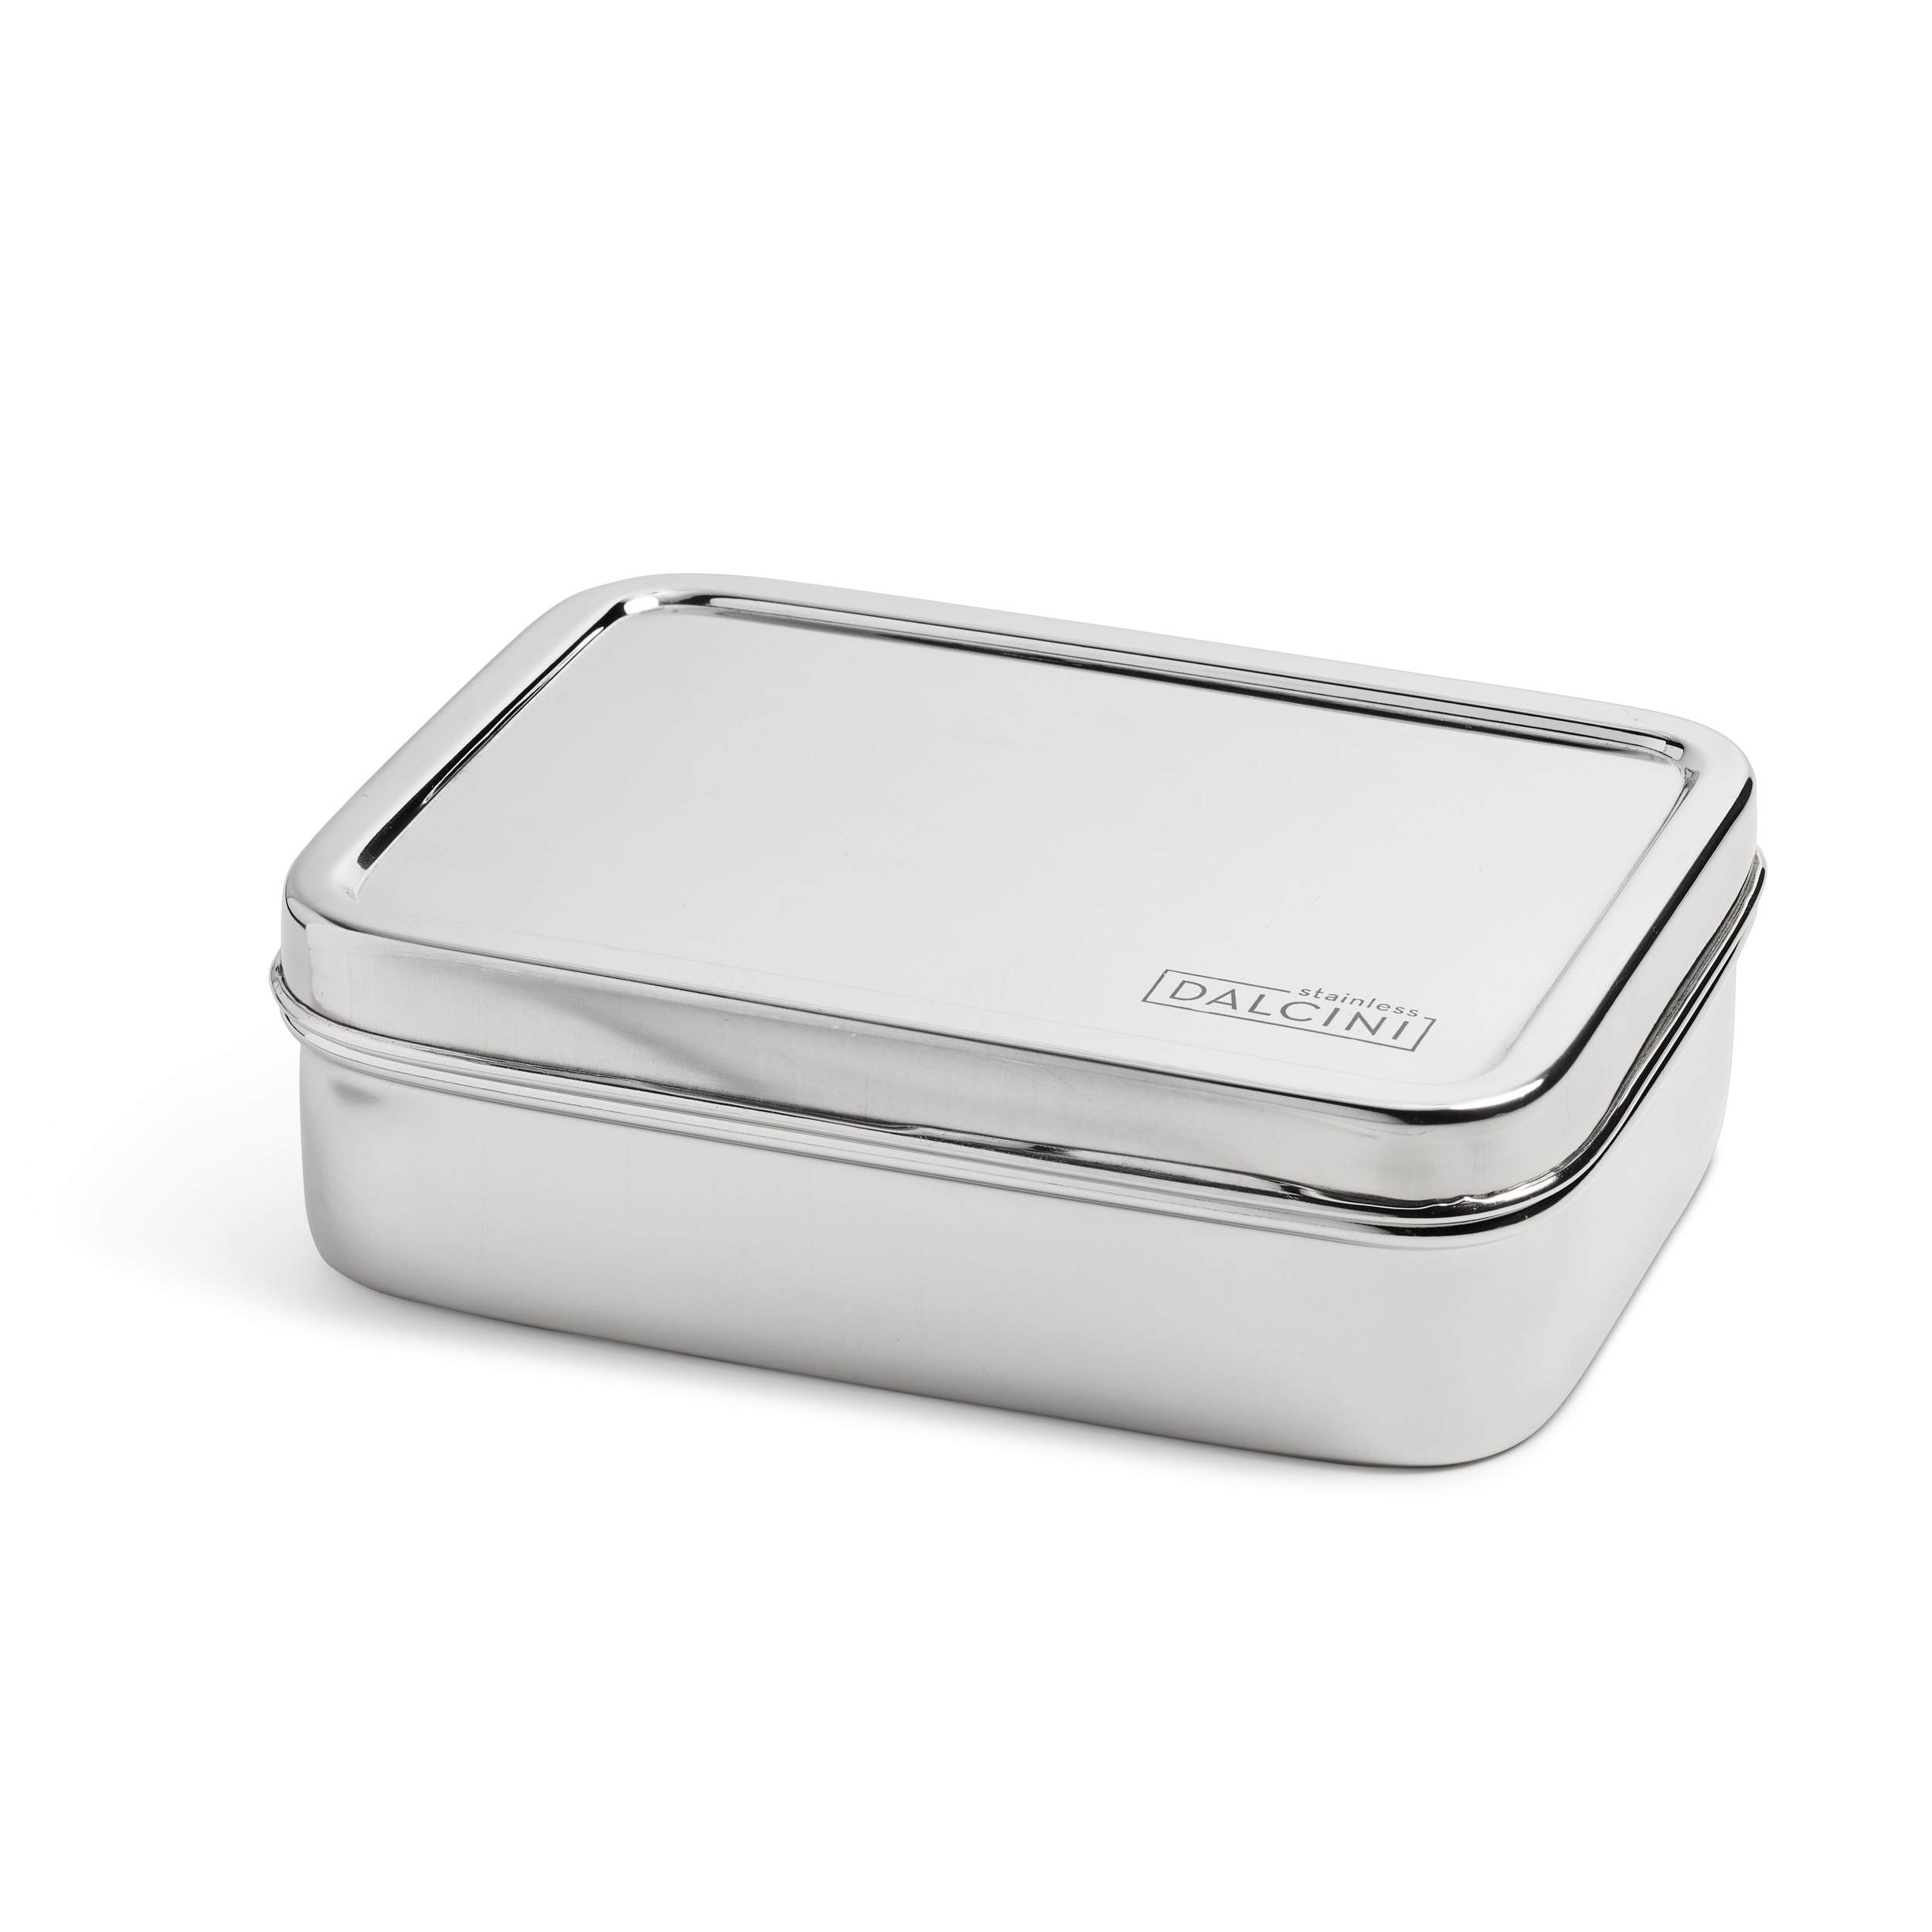 Bistro Box - dalcinistainless